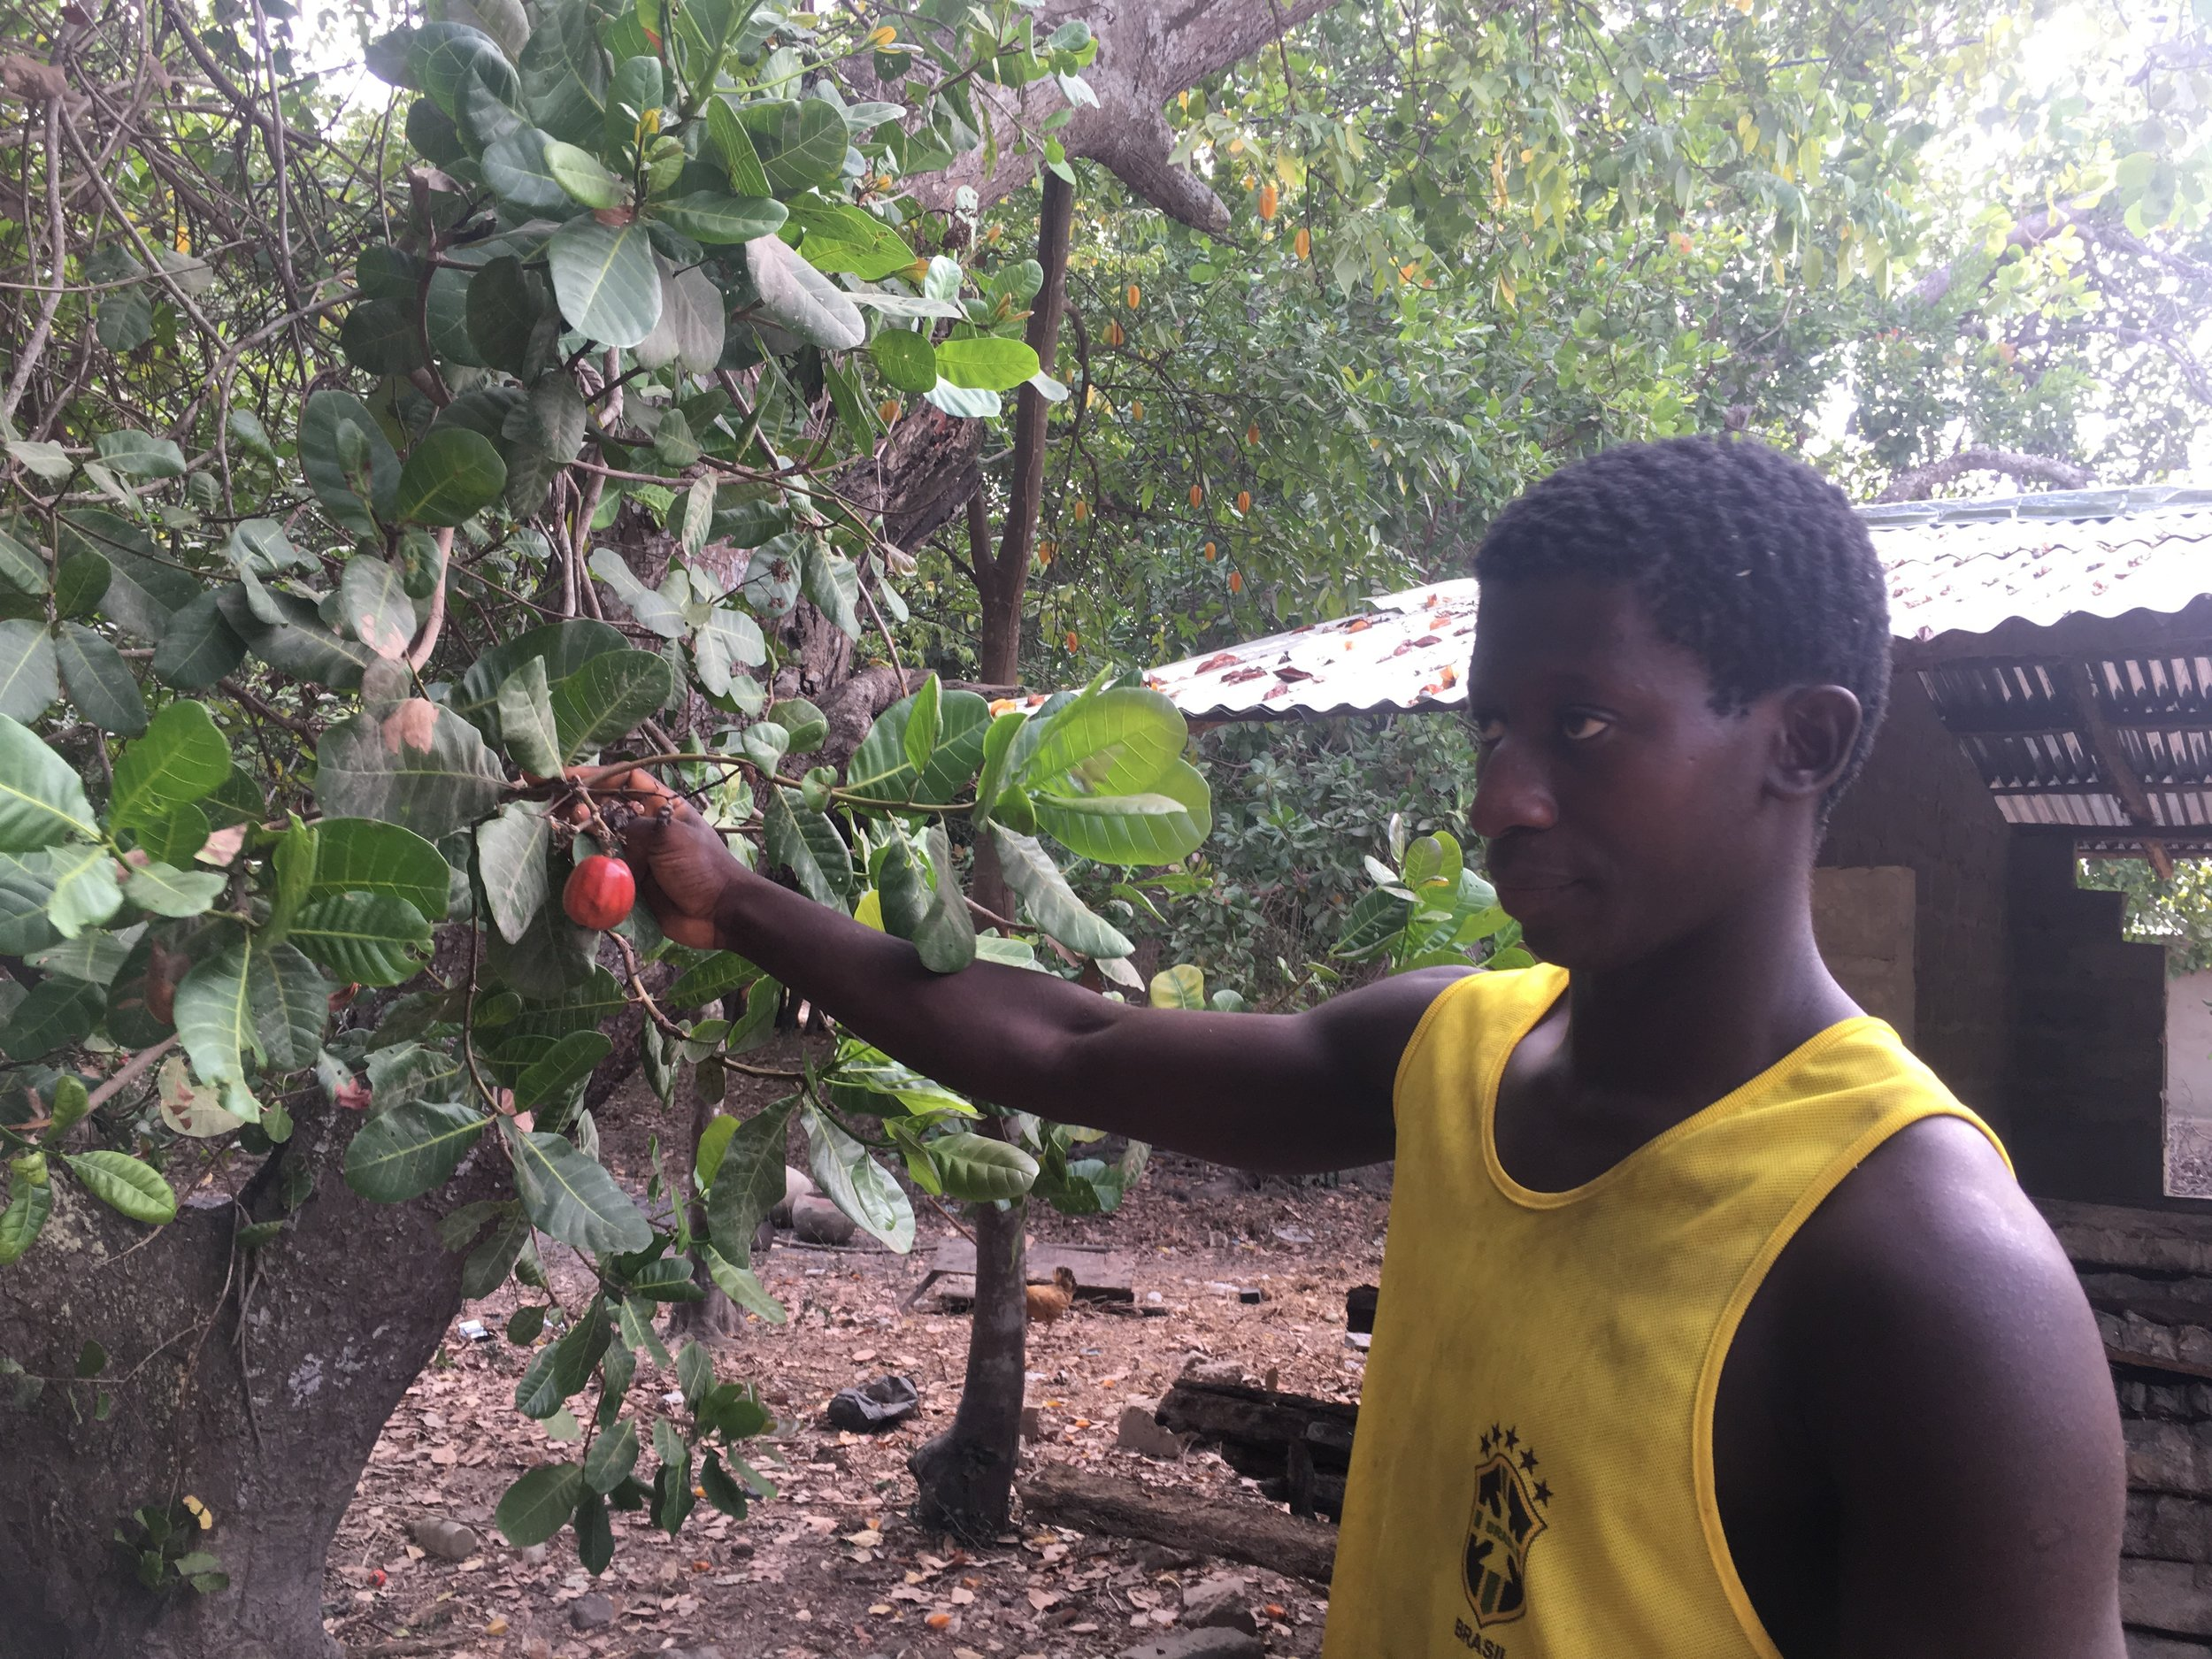 Jean Sebastain takes us on a tour of his family cashew farm.